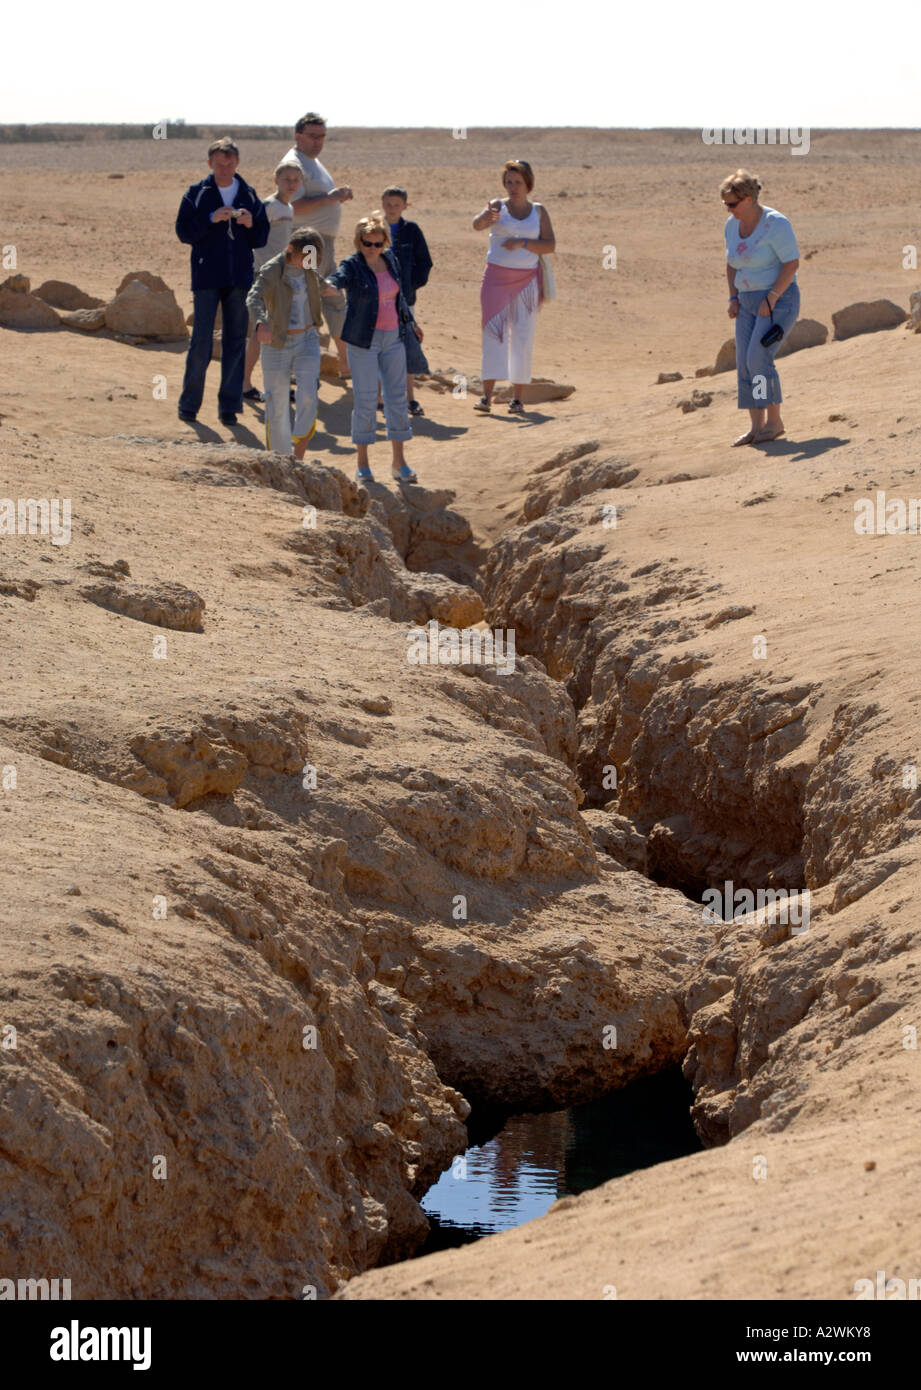 Tourists look at Earthquake damage in Ras Mohamed National Park, Sharm El Sheikh in Egypt - Stock Image